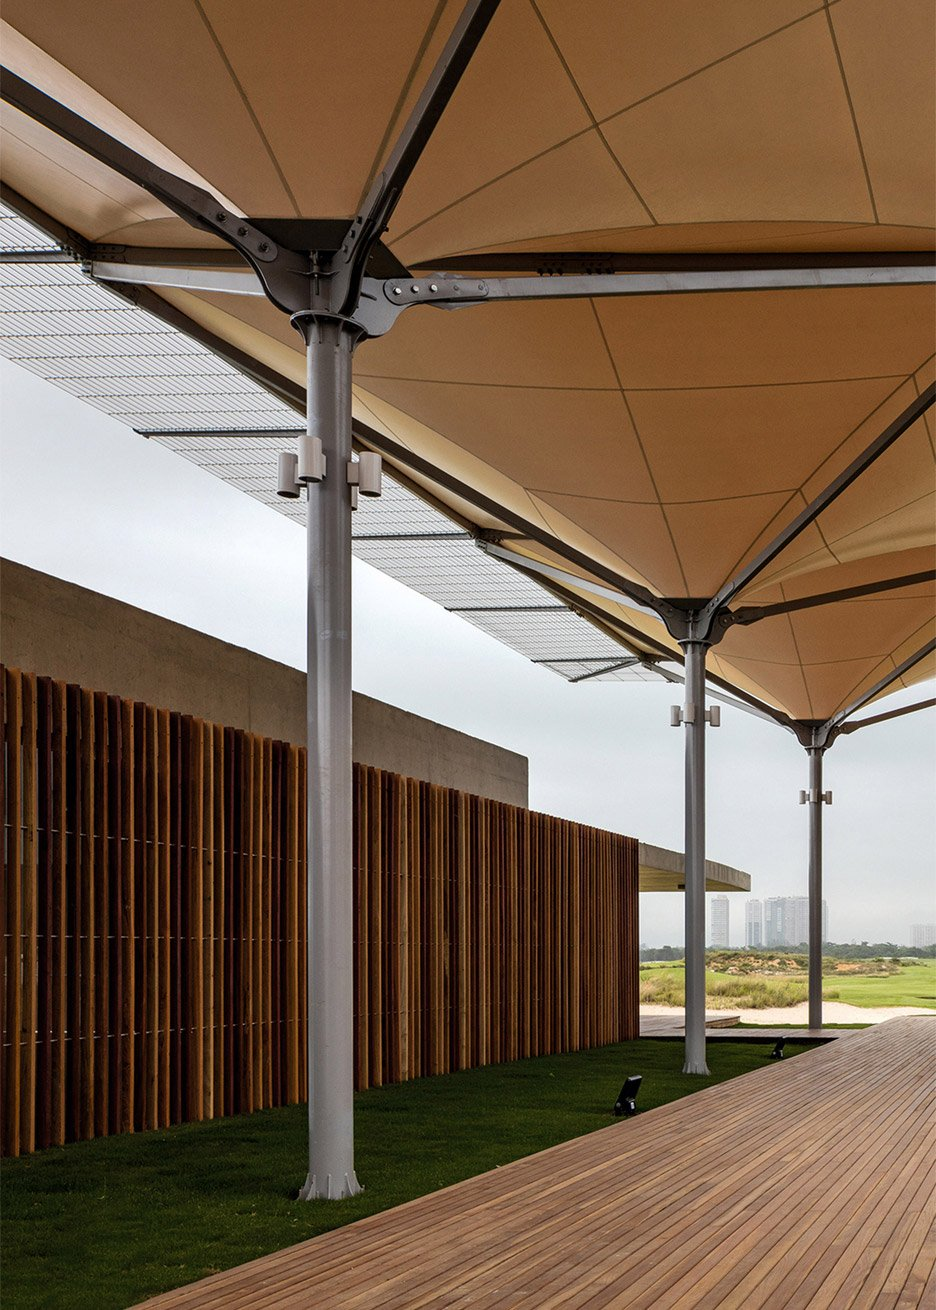 Olympic Golf Course by Rua Arquitetos